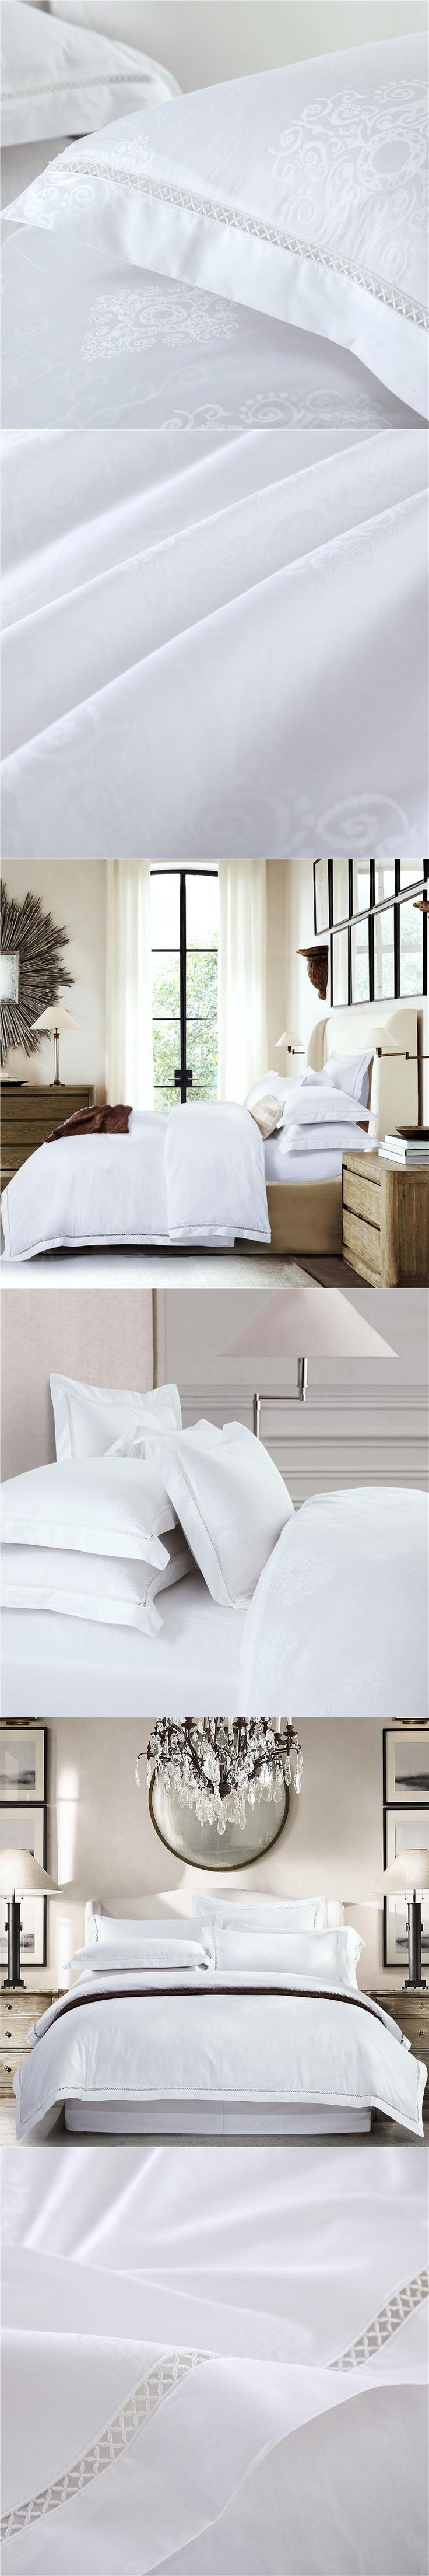 pure white egyptian cotton satin jacquard bedding set king queen size luxury hotel 4pcs bedsheet flat